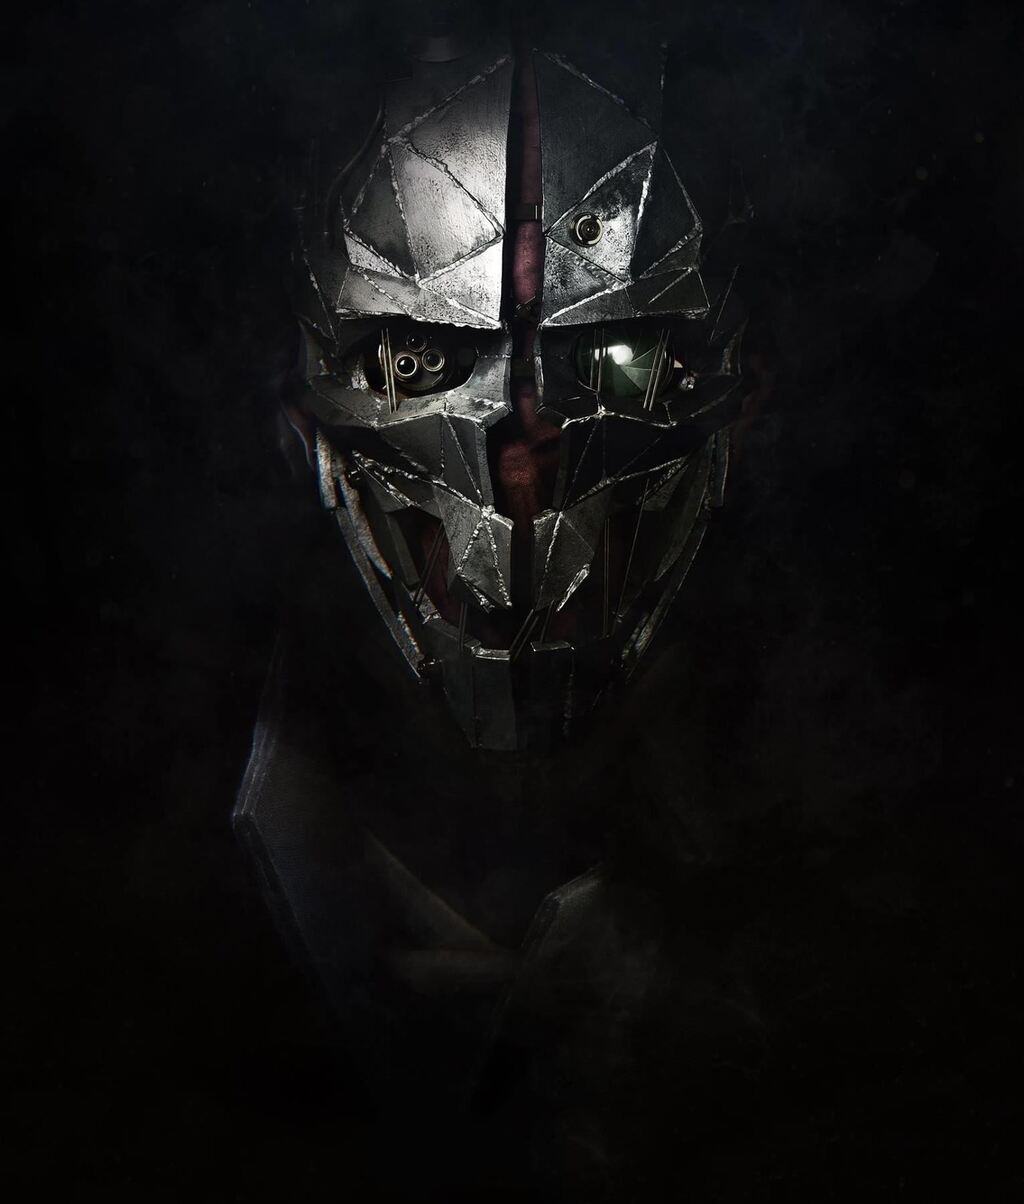 Download Emily And Corvo Dishonored 2 4k HD Wallpaper In ...